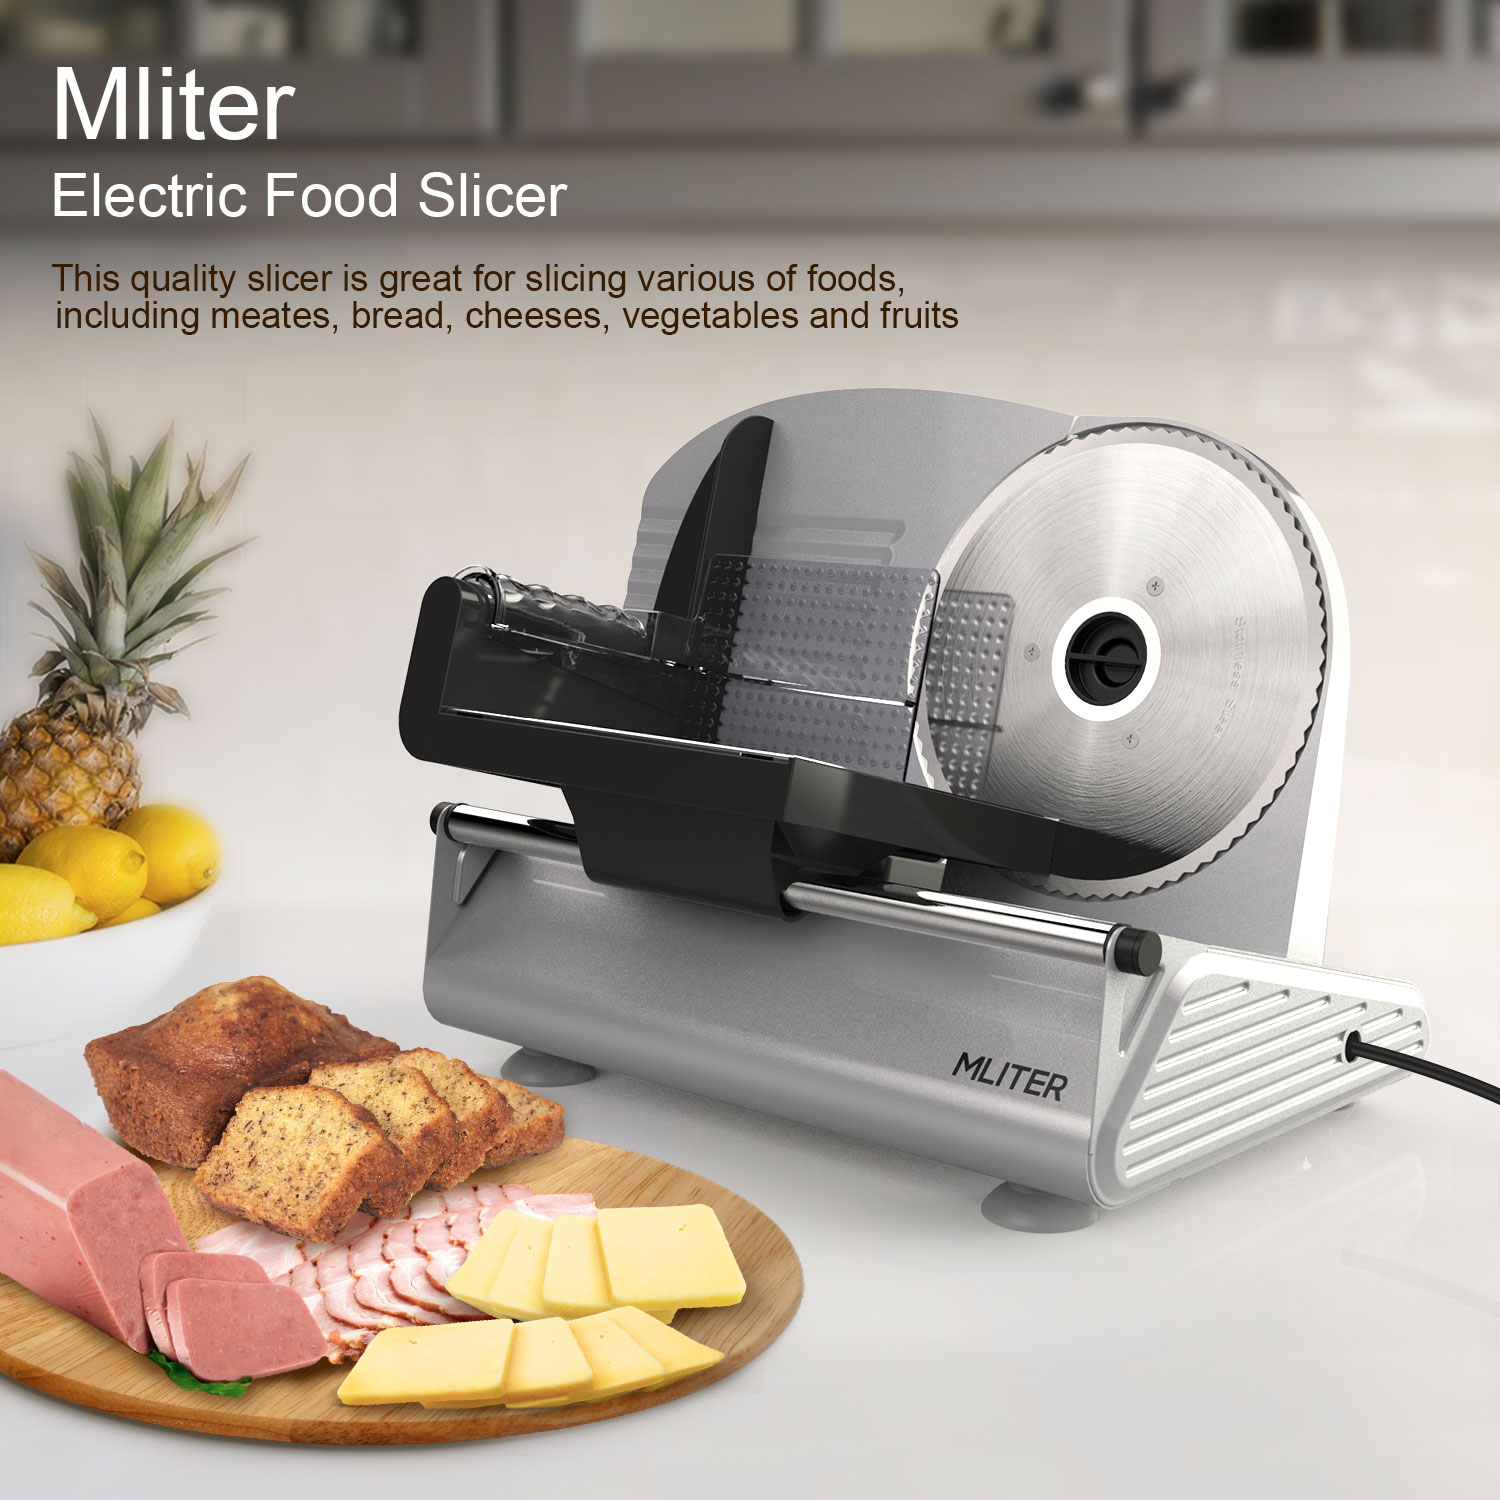 kitchen food slicer distressed wood table 7 5 inch blade mliter electric meat vegetable precision cheese deli stainless bread cutter home 150 watt walmart com